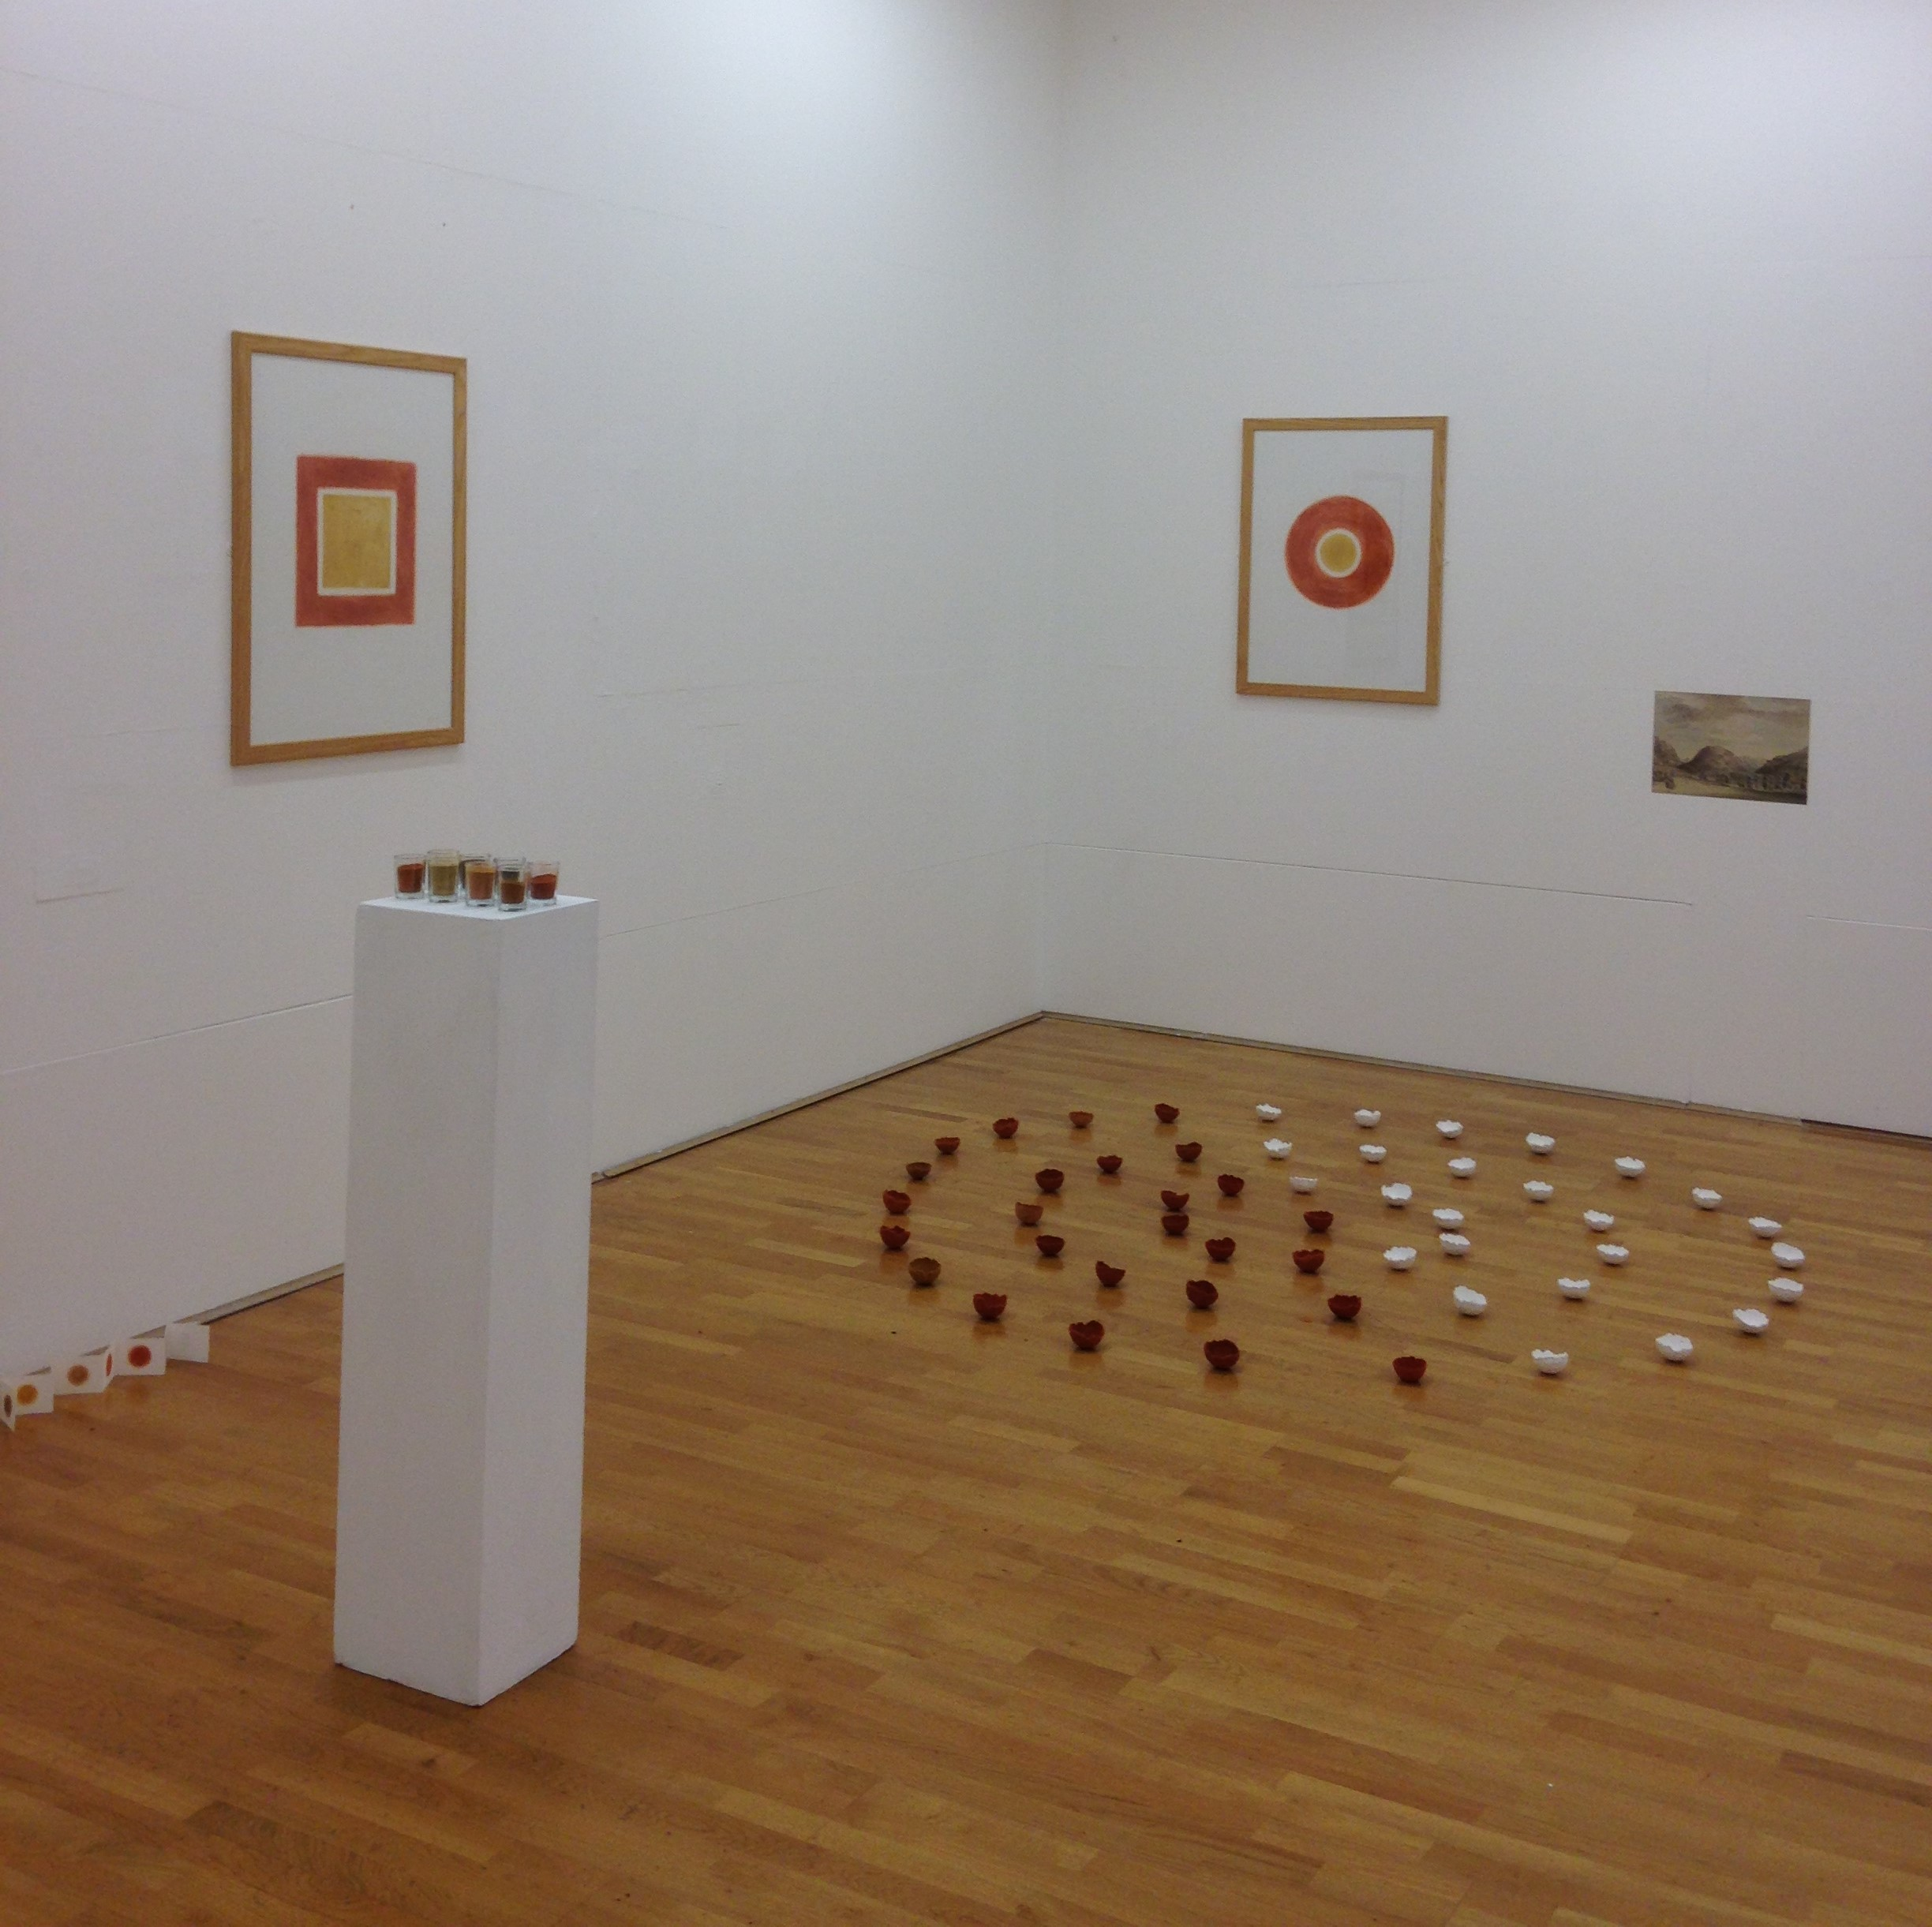 Marged Pendrell - Y Pwll - Dinas Emrys (2016), installation of 26 white bowls and 27 red bowls